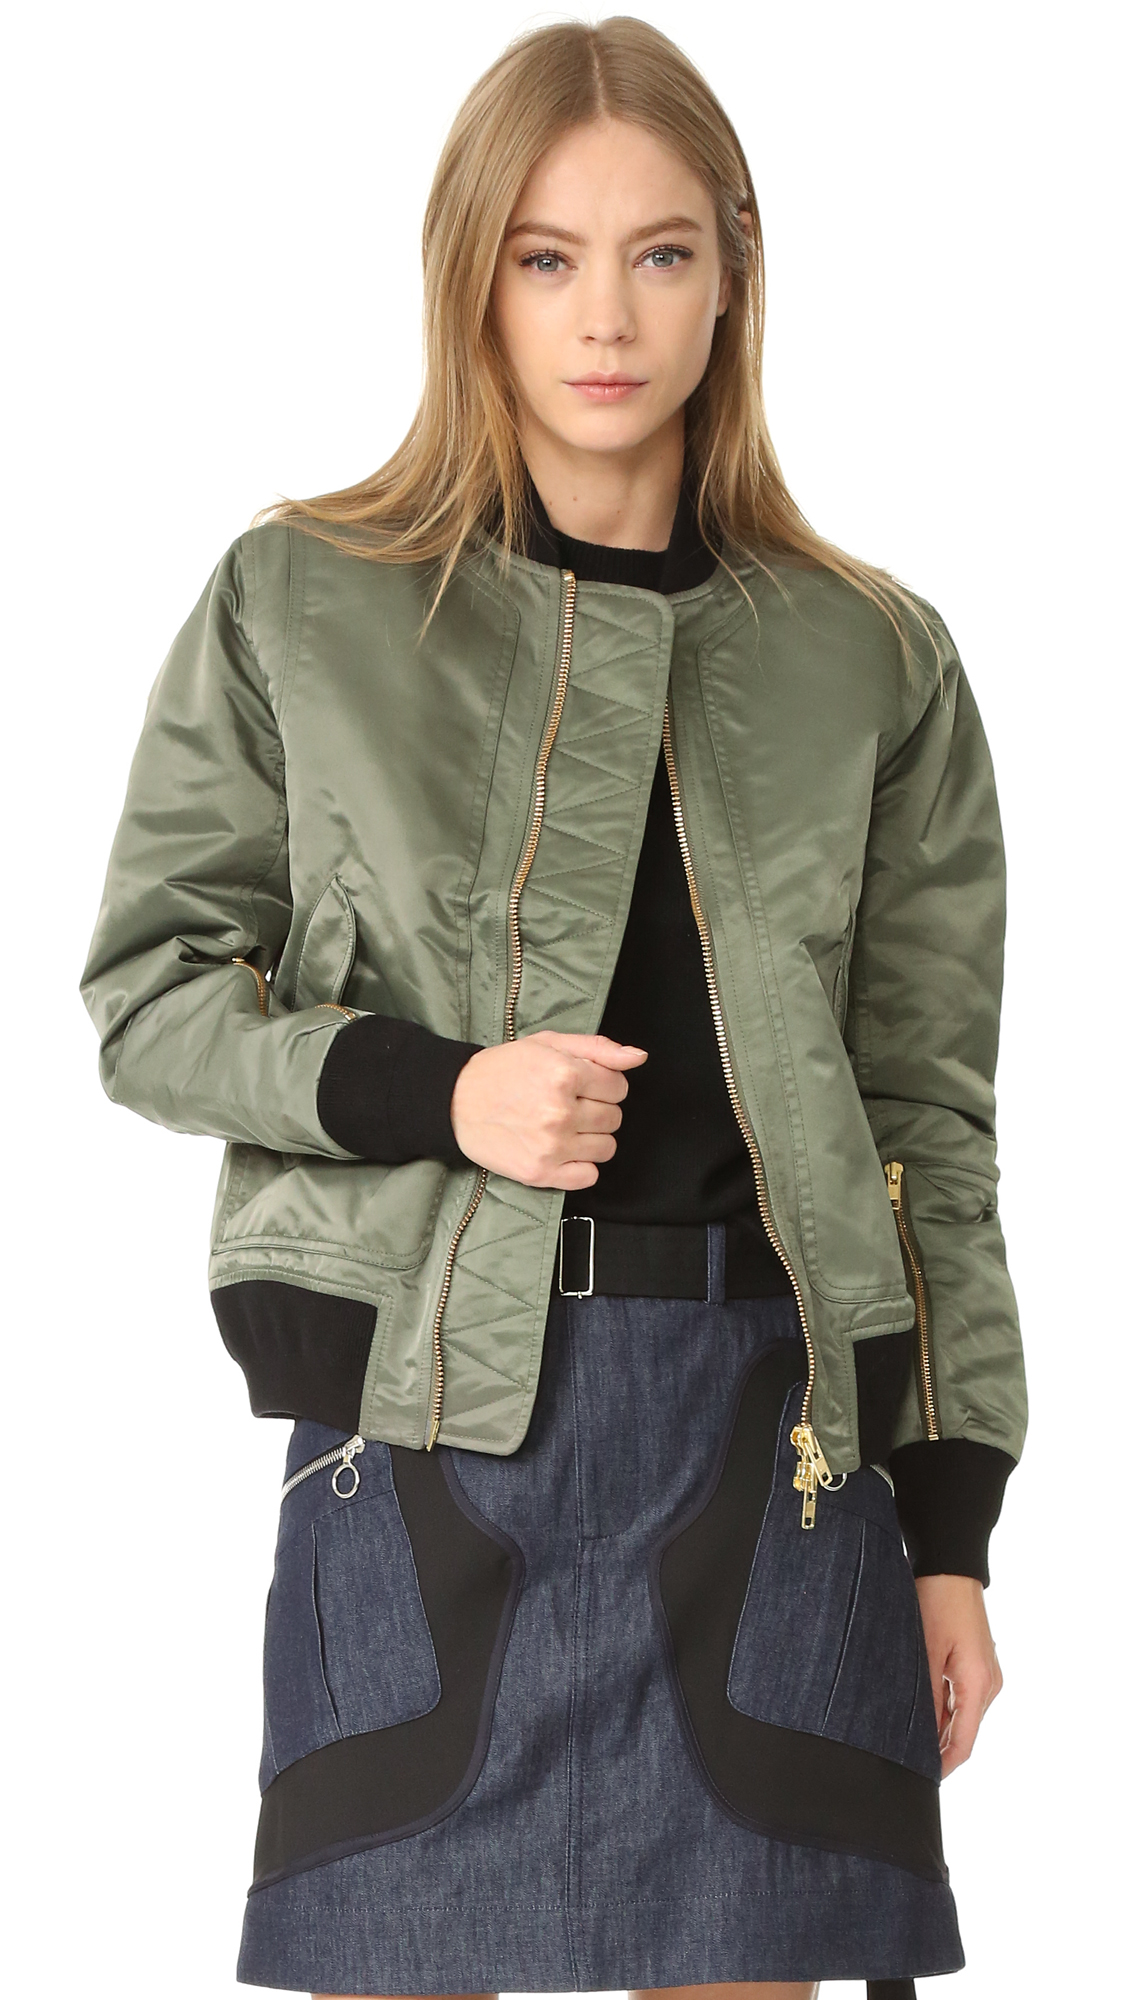 A utilitarian Tim Coppens bomber jacket with lustrous sheen. Flap pockets border the 2 way zip placket, and zip pockets detail the long sleeves. Contrast, ribbed edges. Quilted lining. Fabric: Lustrous technical weave. 100% nylon. Dry clean. Imported,